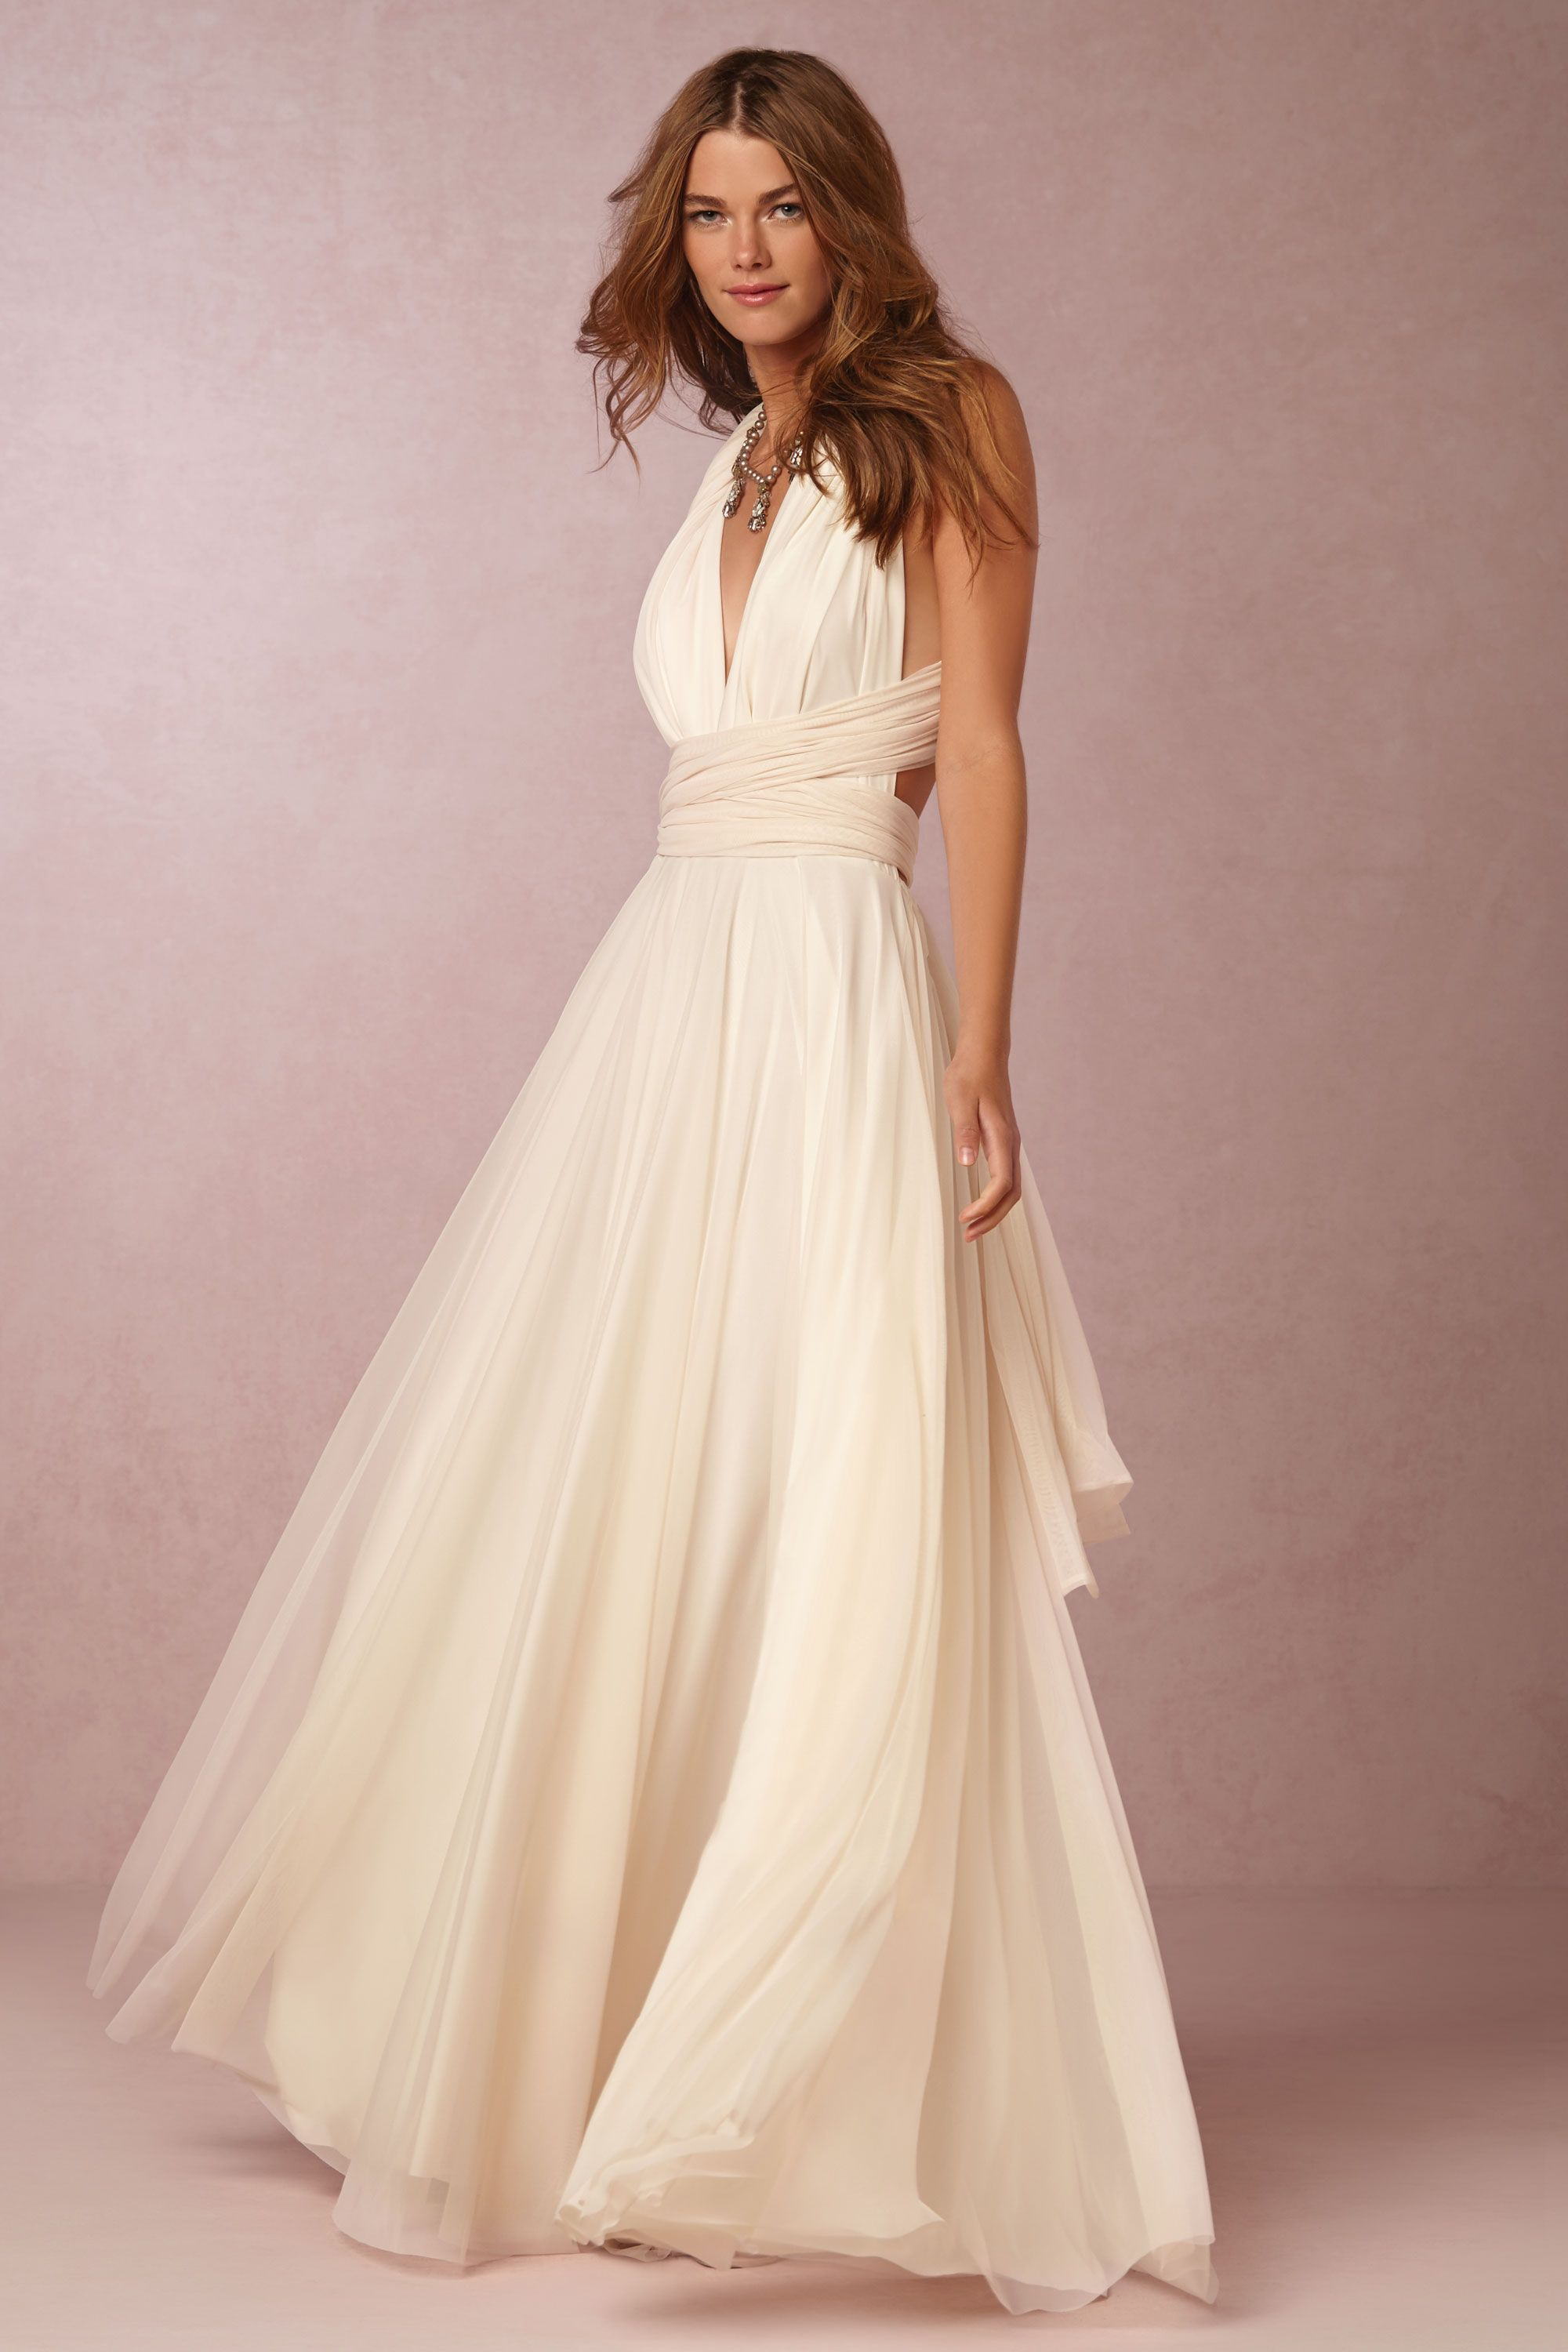 Beach wedding party dresses  BHLDN Ginger Convertible Maxi Dress in Bride Reception Dresses at